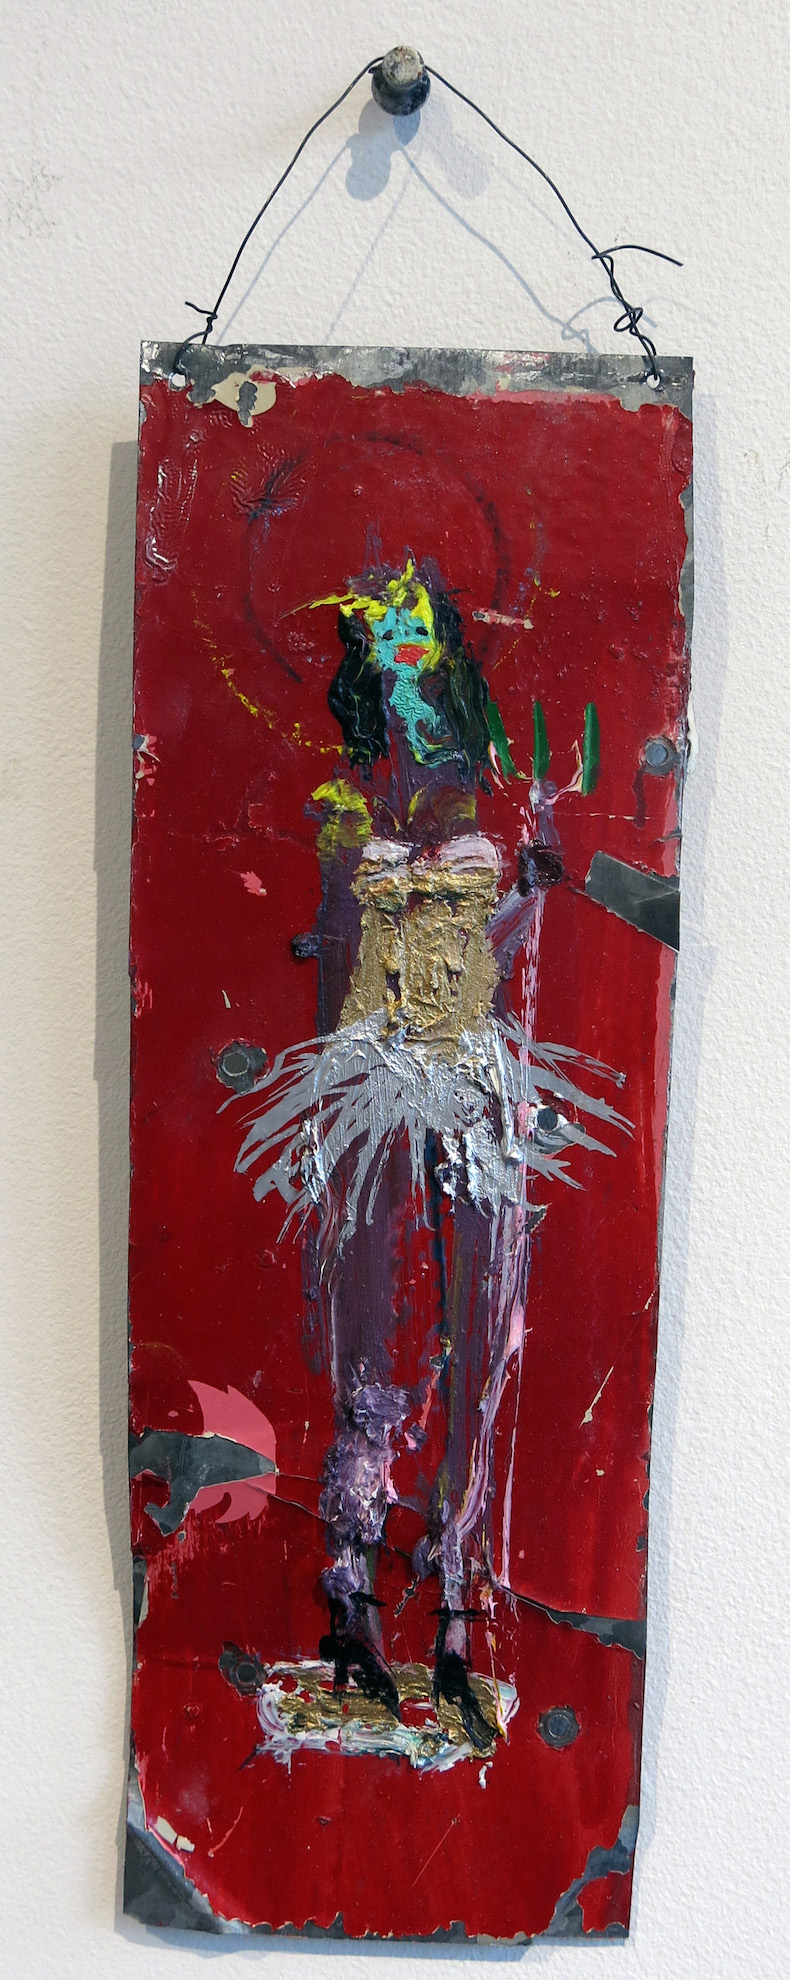 Matt Blackwell,  She Devil (Retablo),  2015, mixed media on tin, 10.75h x 3.5w in.